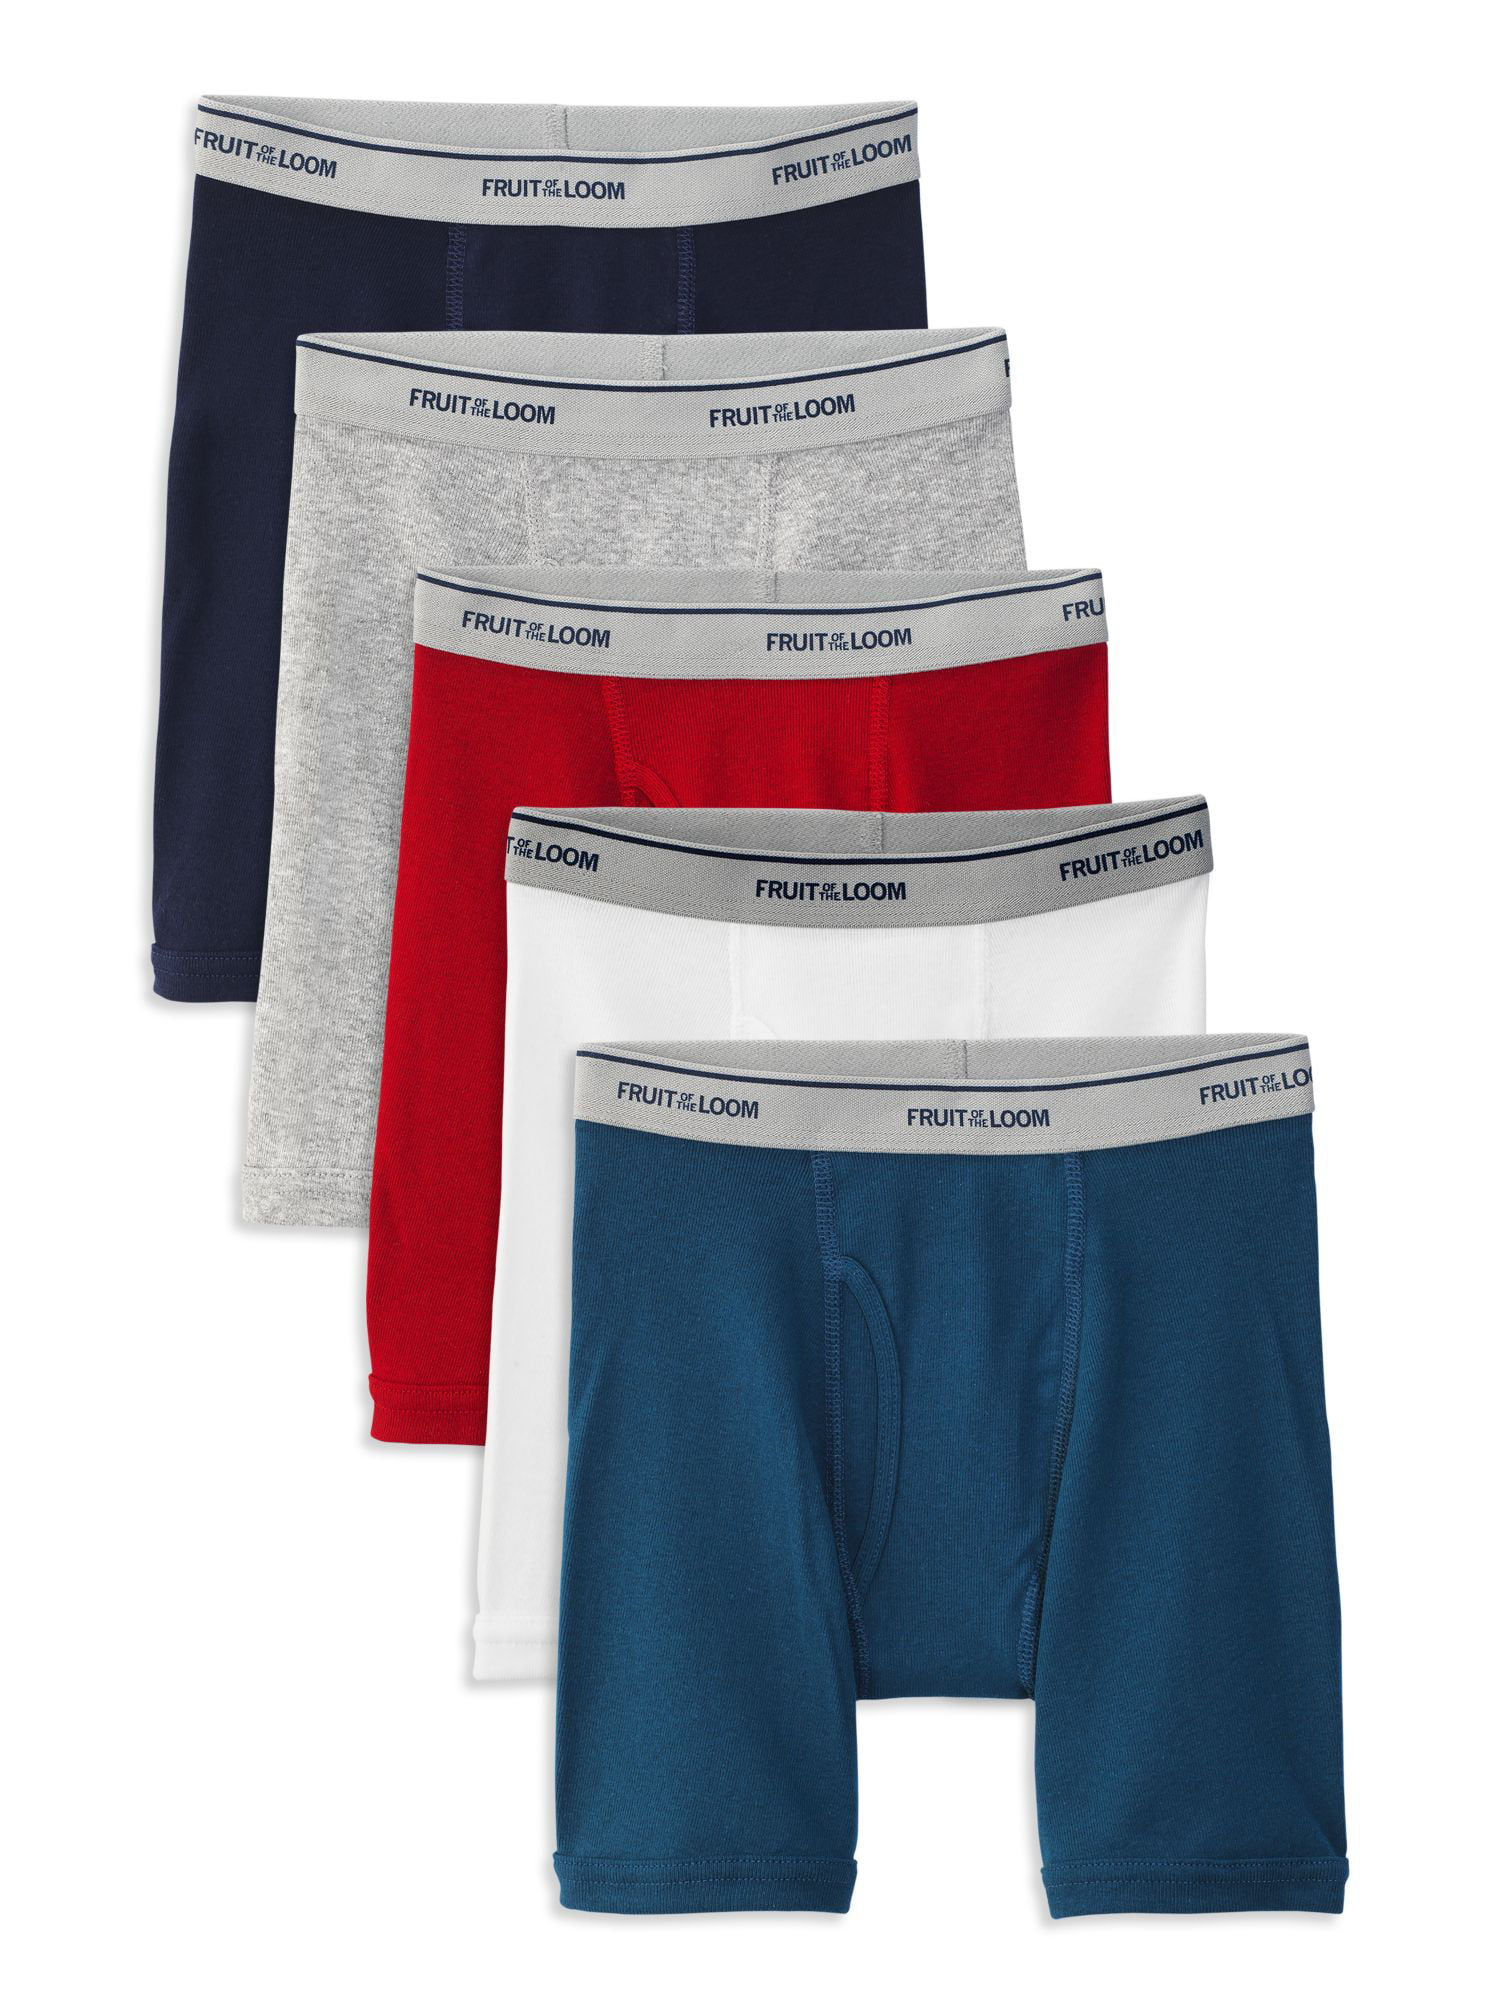 96a6bbacd0077 Fruit of the Loom Boys Tagfree Boxer Brief Underwear, 5 Pack ...